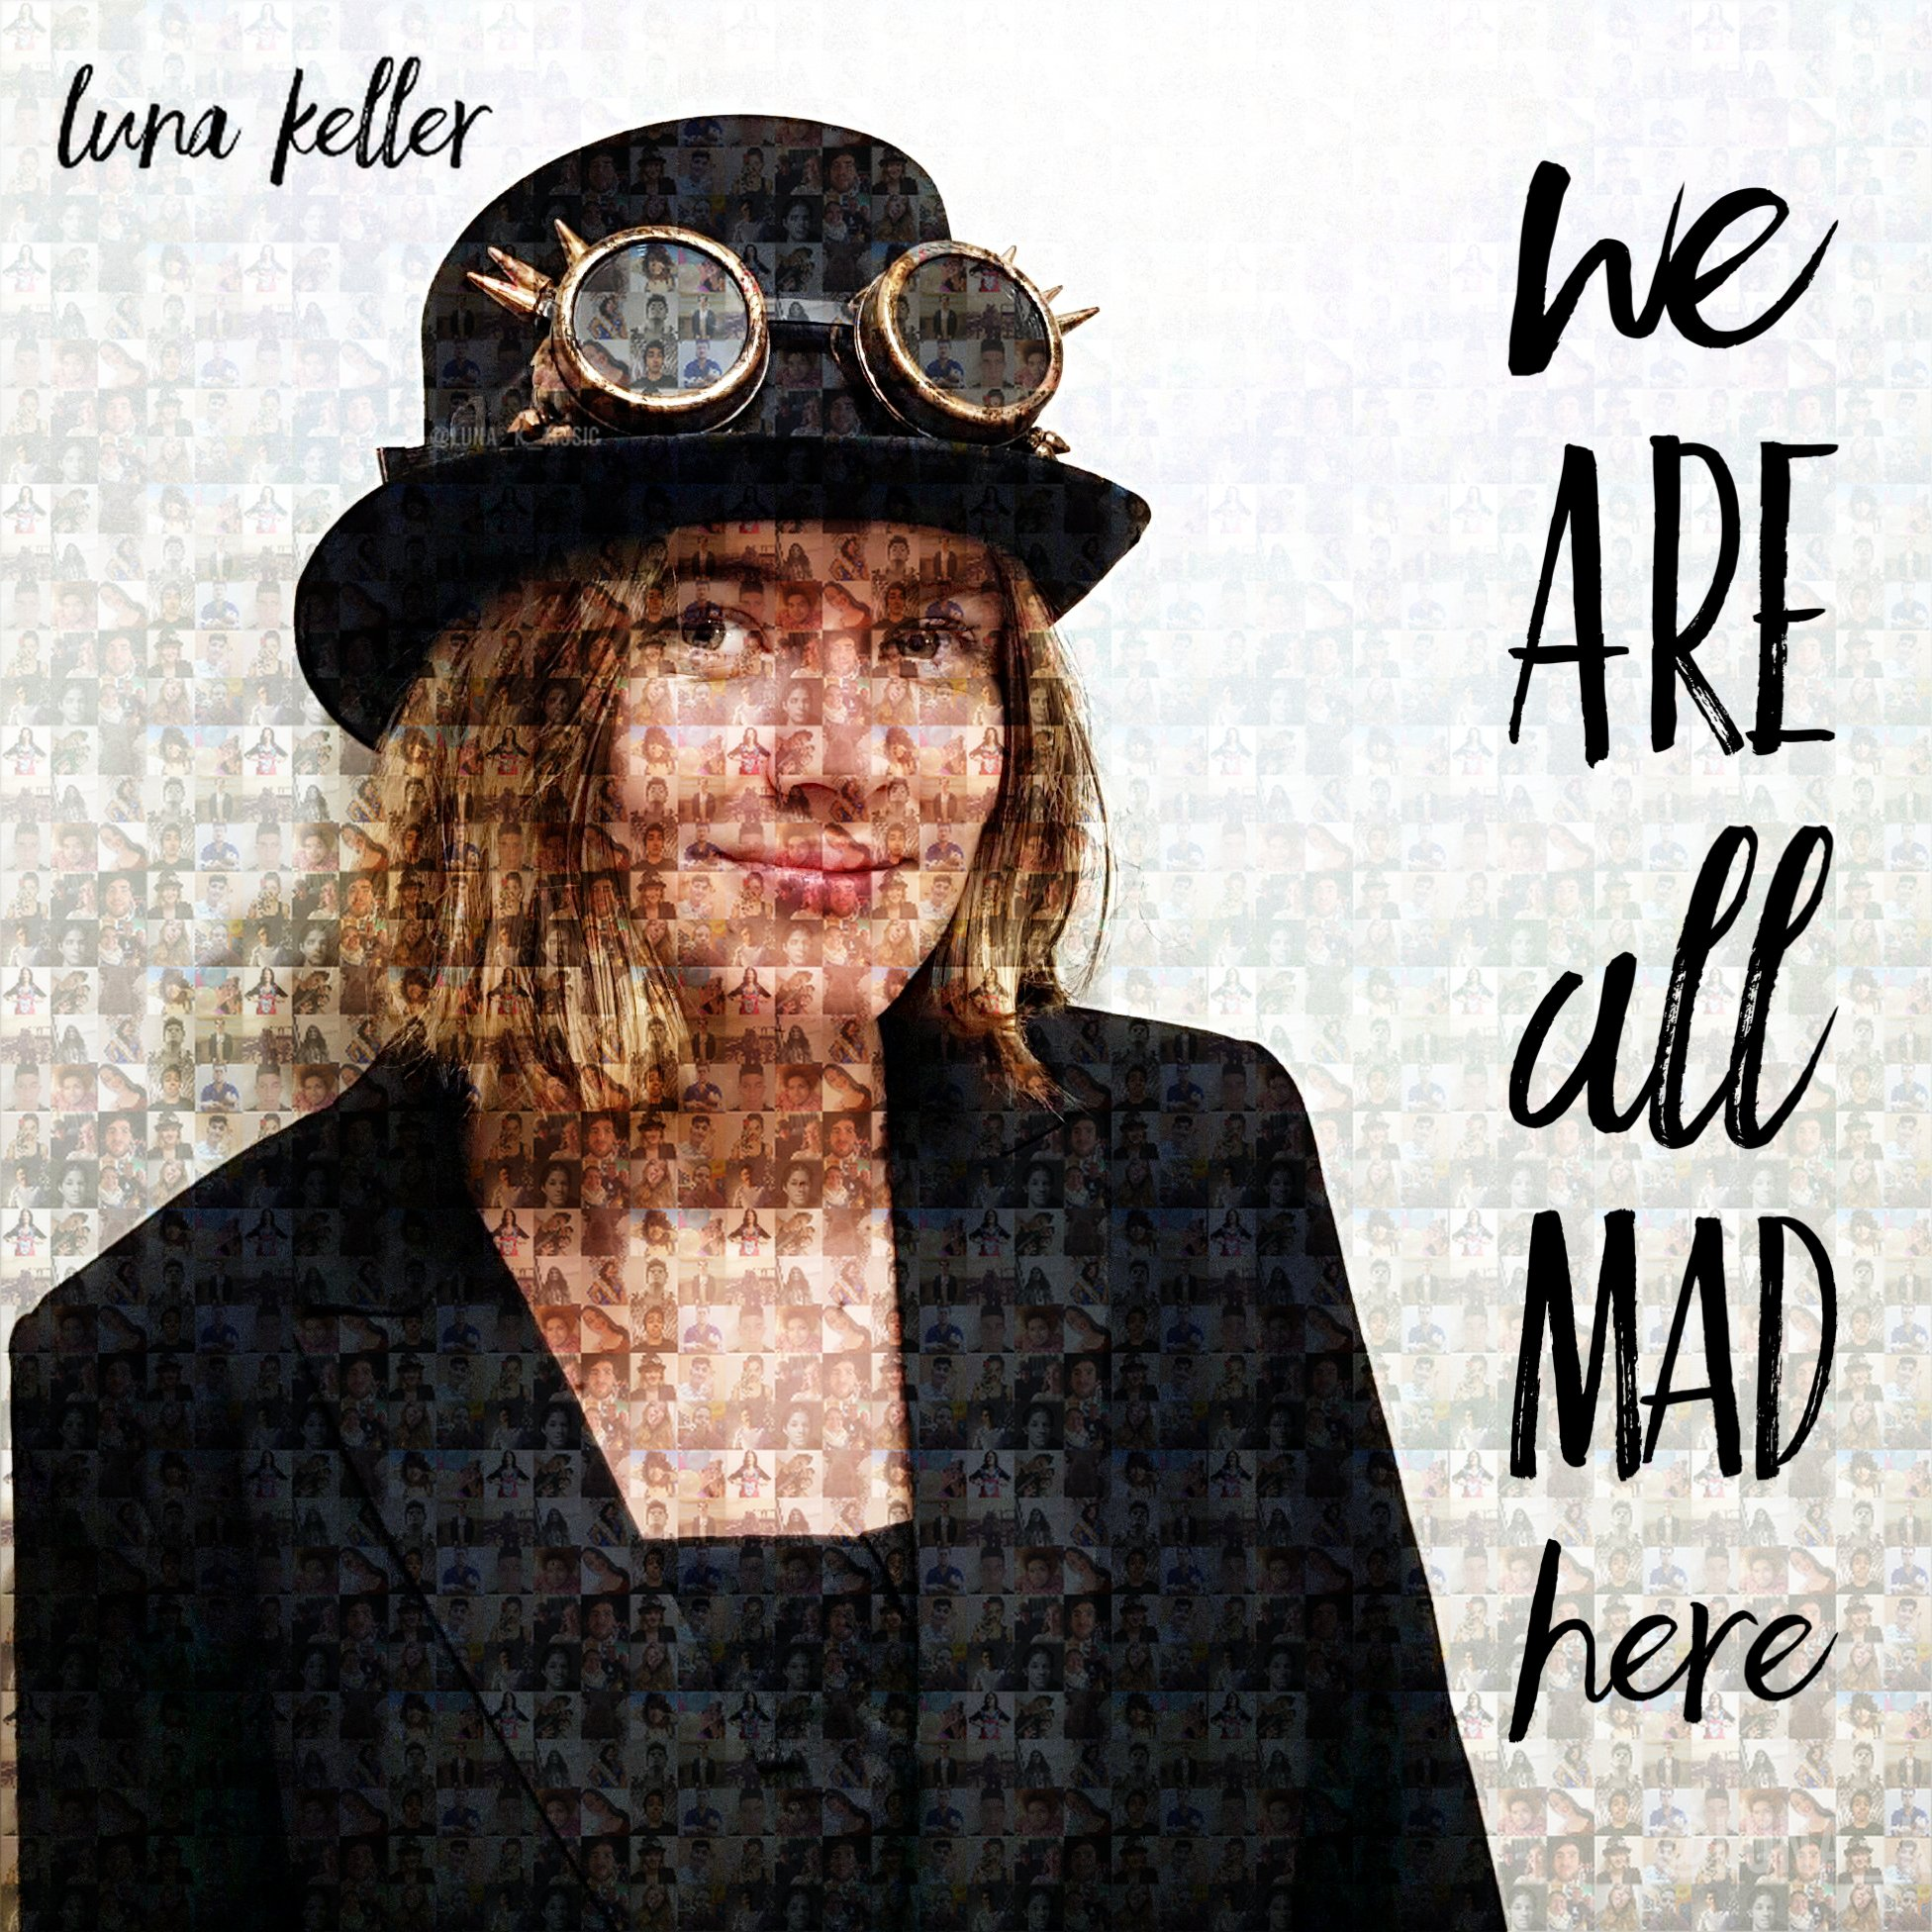 We are all mad here cover